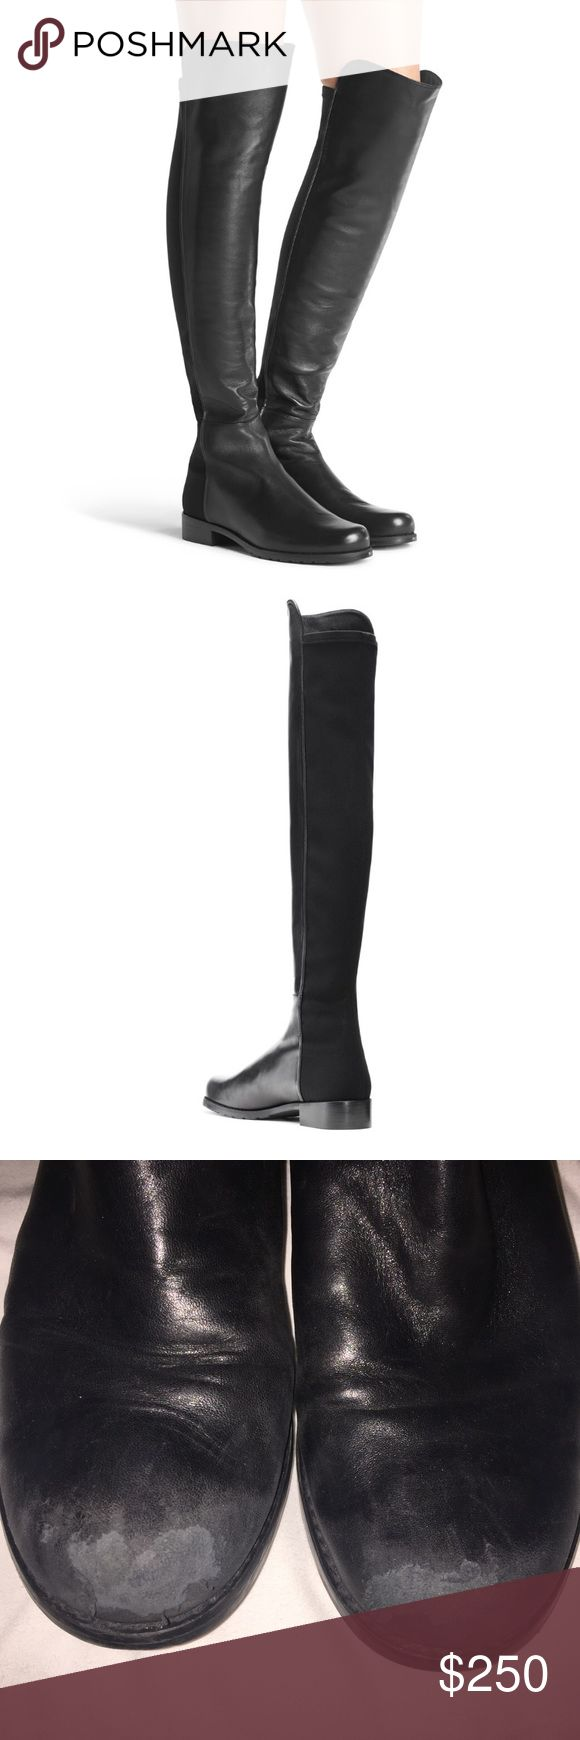 Stuart Weitzman Nappa Leather 5050 Boot Size 8 Authentic SW 5050 boot in used condition. The only major flaws are the toe scuffs (pictured in the 3rd photo) but can be fixed at any shoe repair shop! ($200 through Ven mo) Stuart Weitzman Shoes Over the Knee Boots